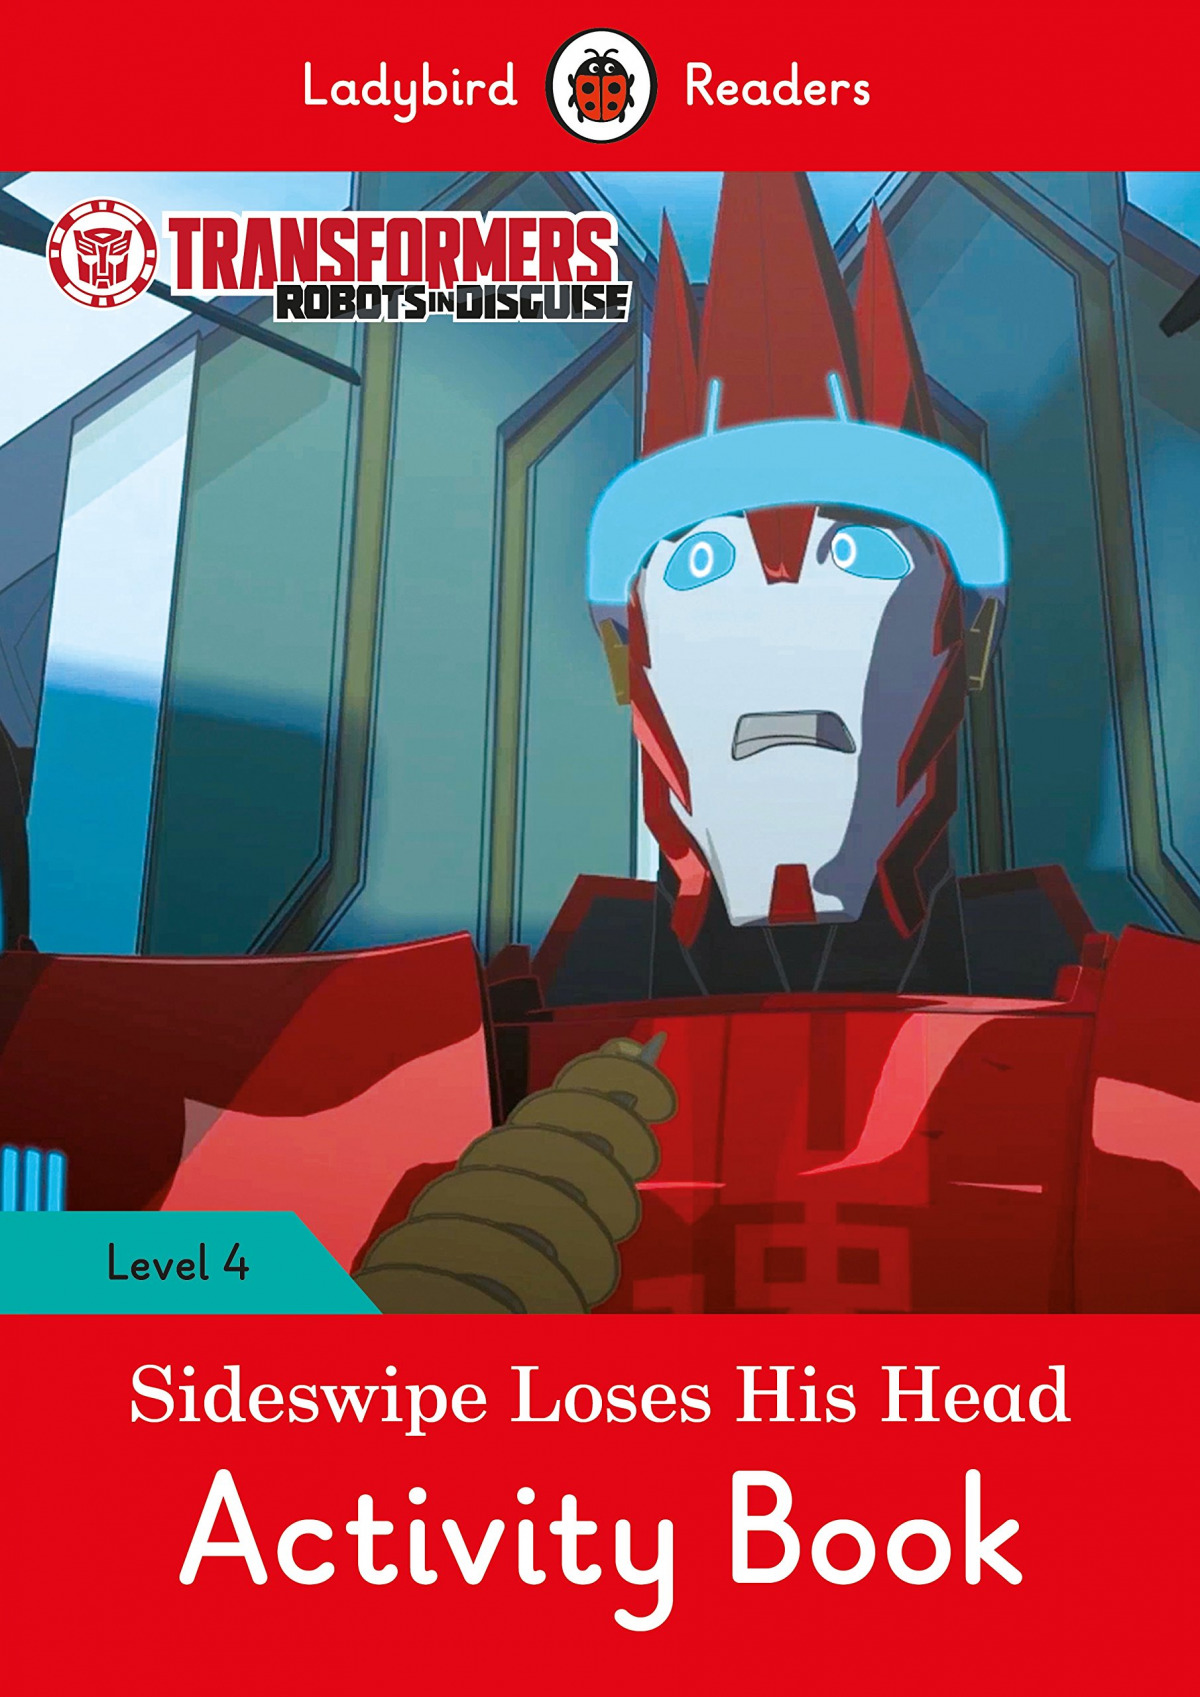 SIDESWIPE LOSES HIS HEAD. TRANSFORMERS. ACTIVITY BOOK